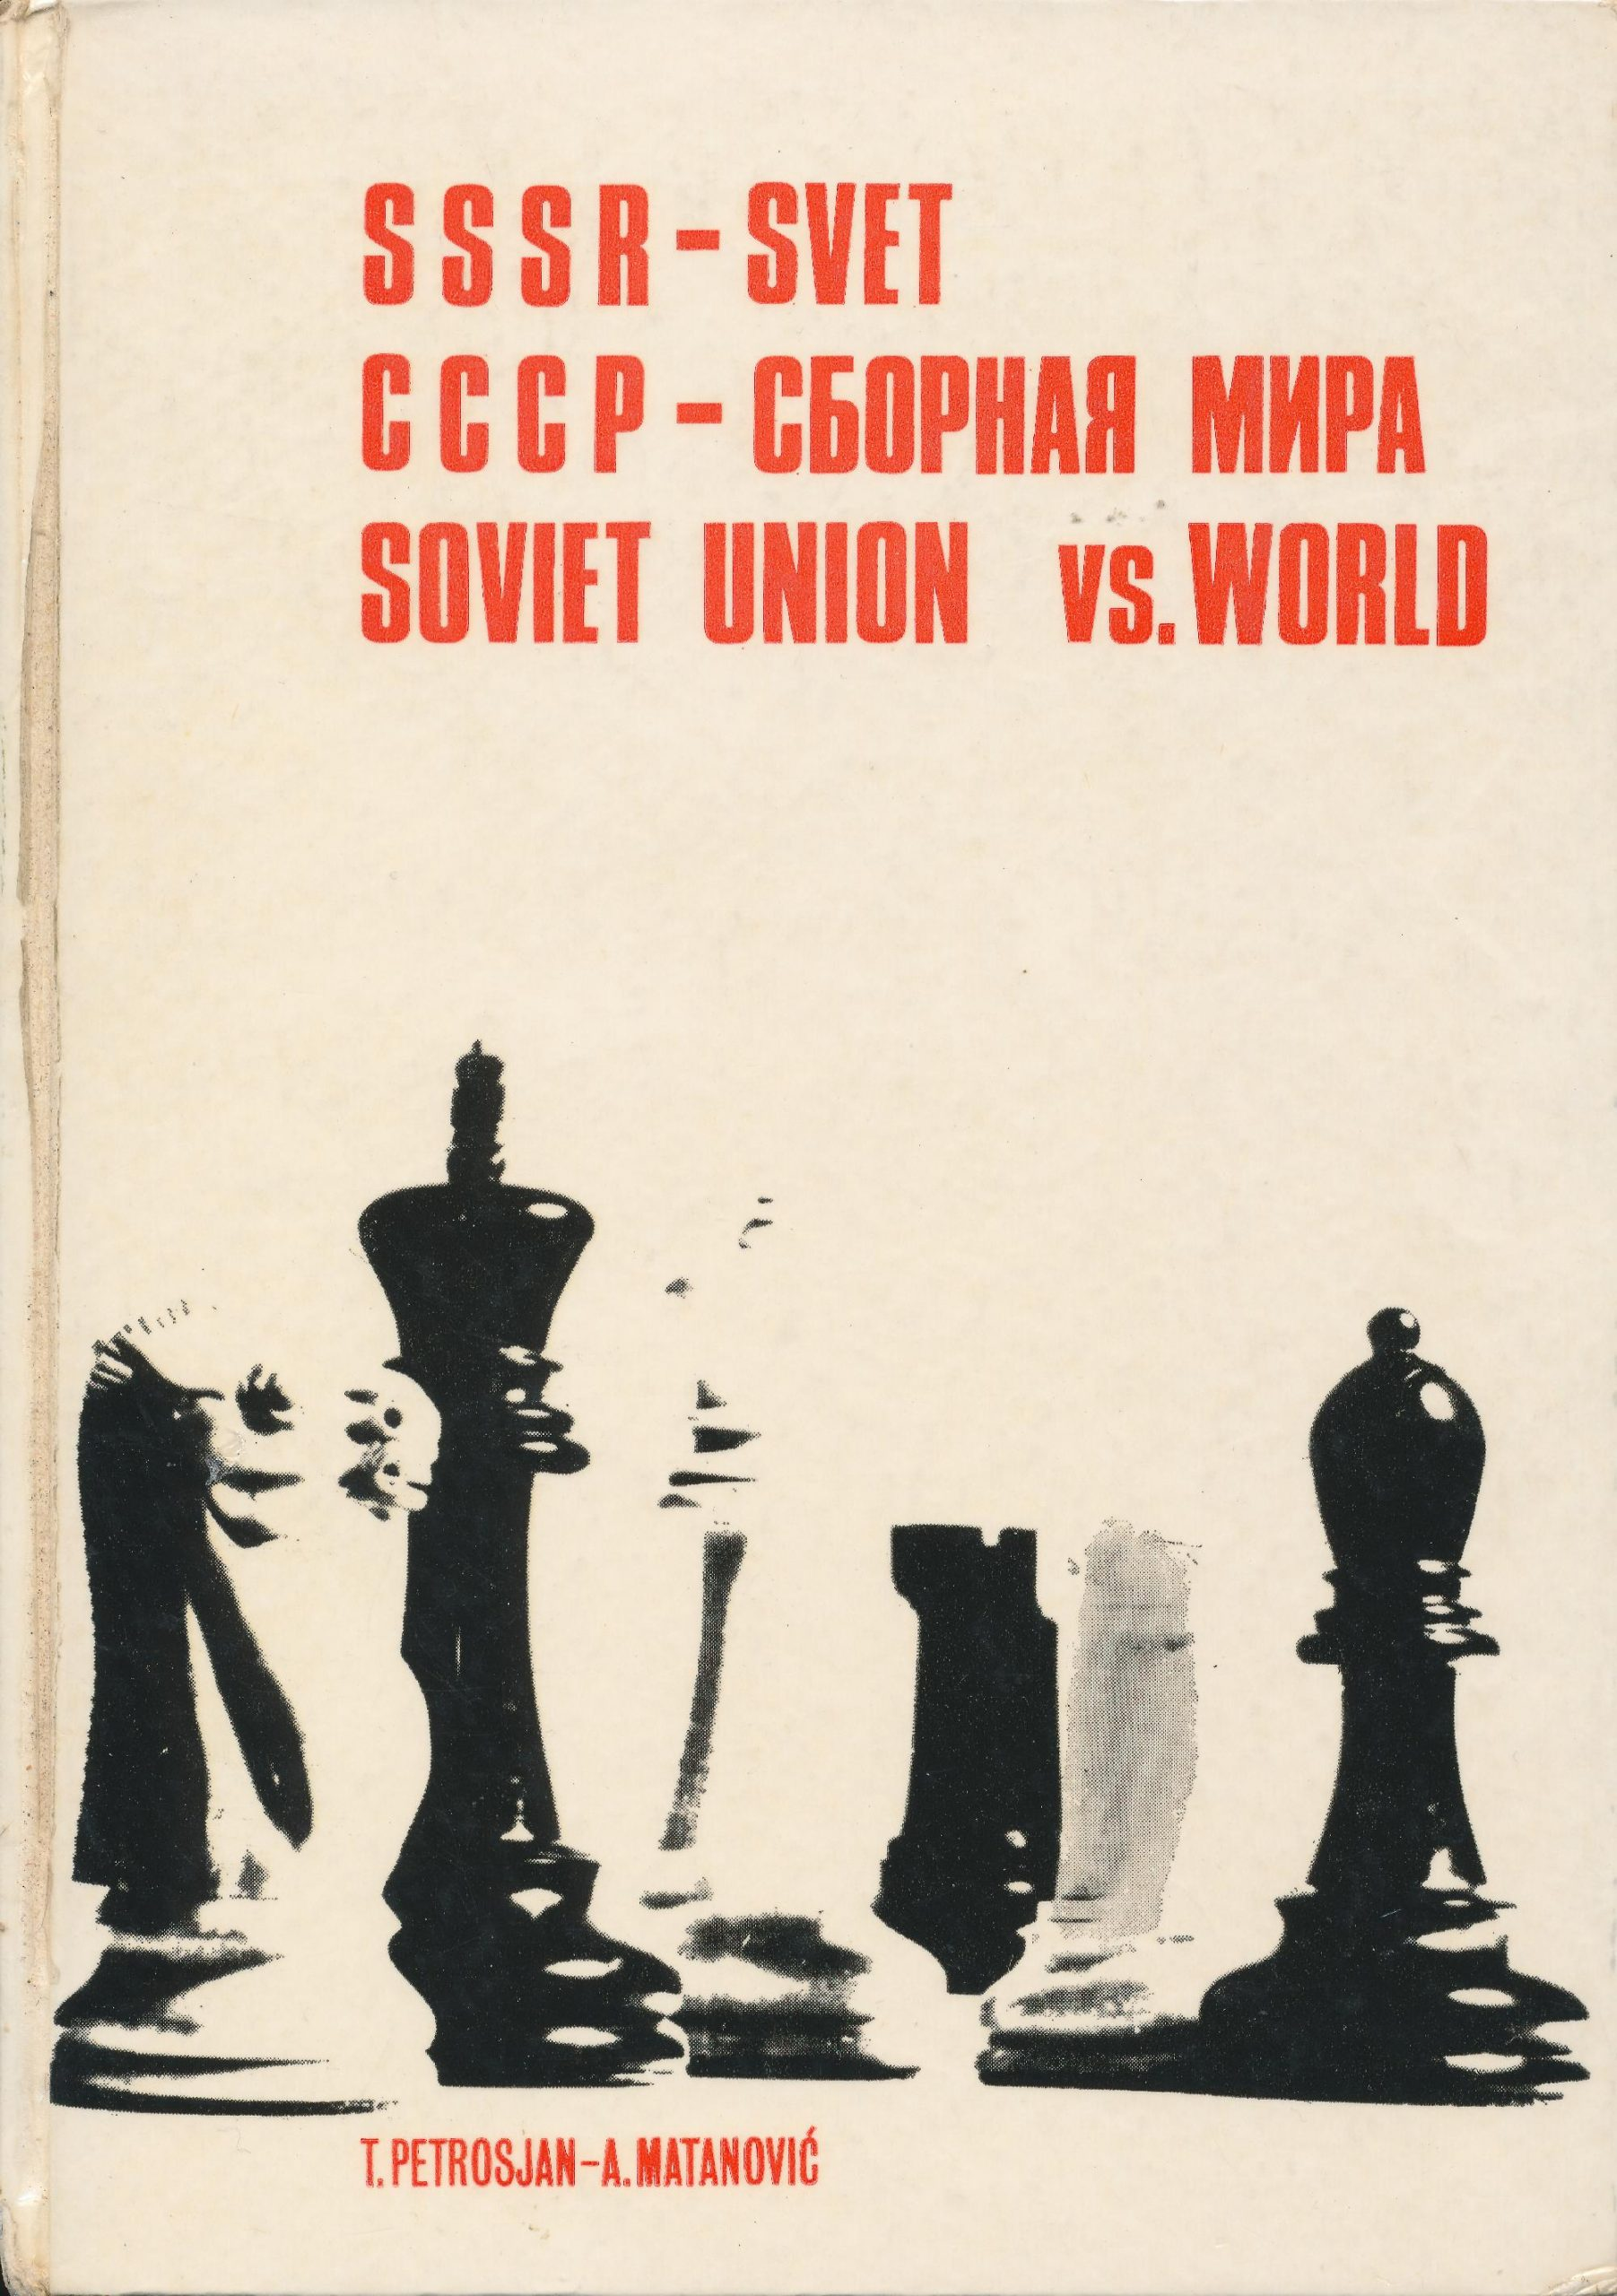 SSSR - SVET, SSSR - Sbornaya Mira, Soviet Union Vs World